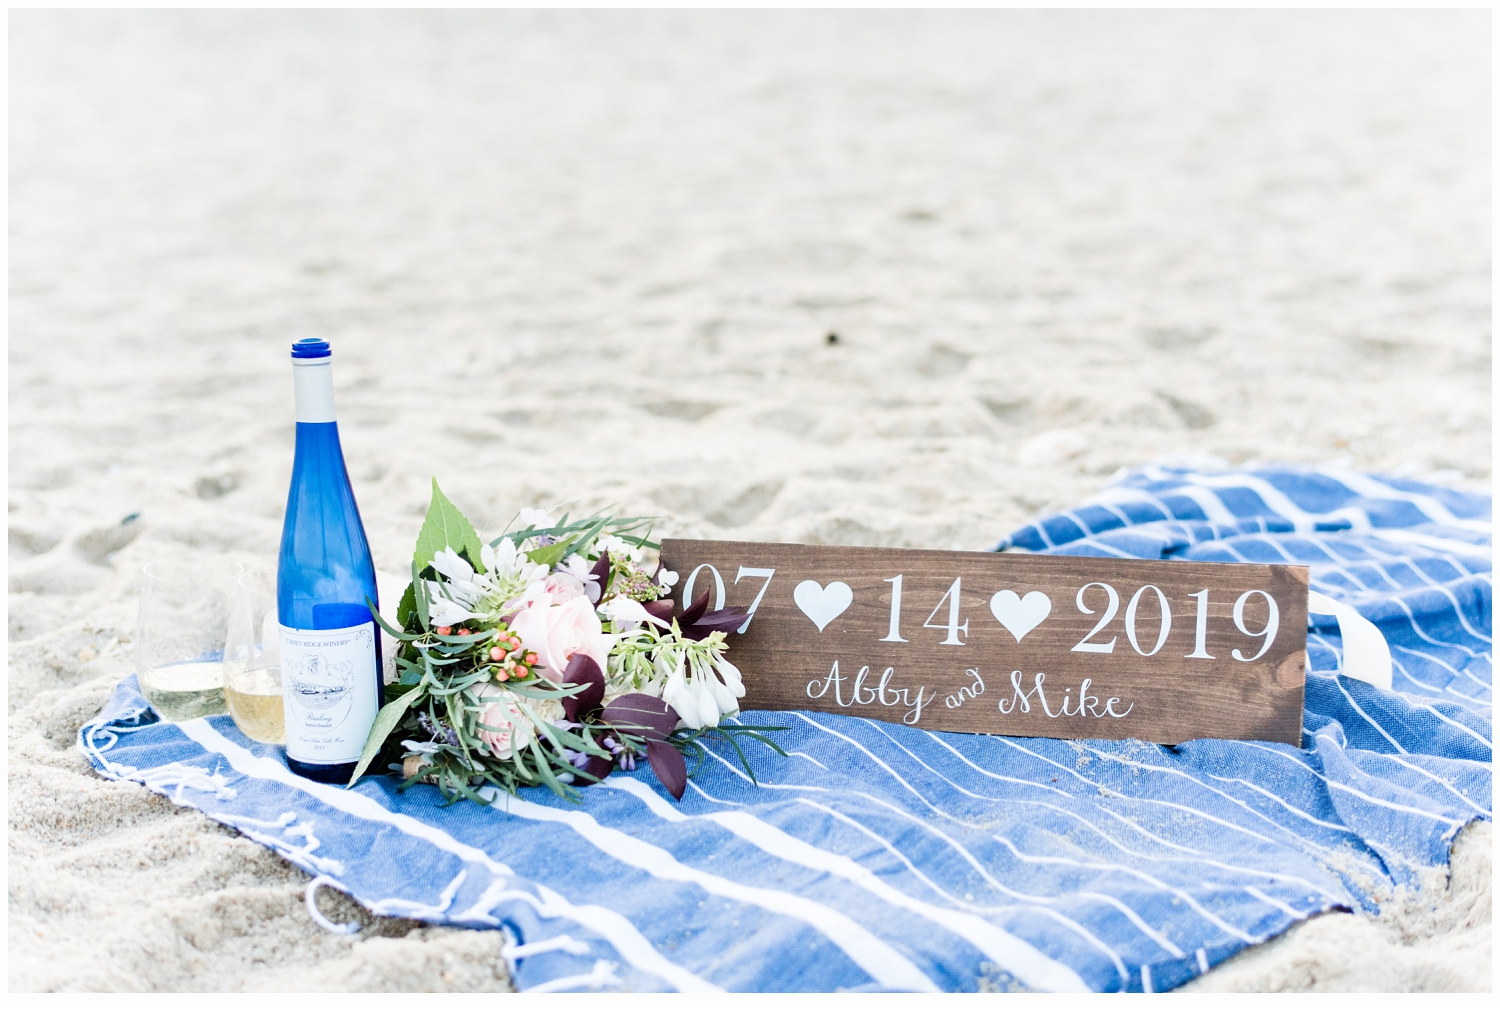 bottle of wine on a beach blanket